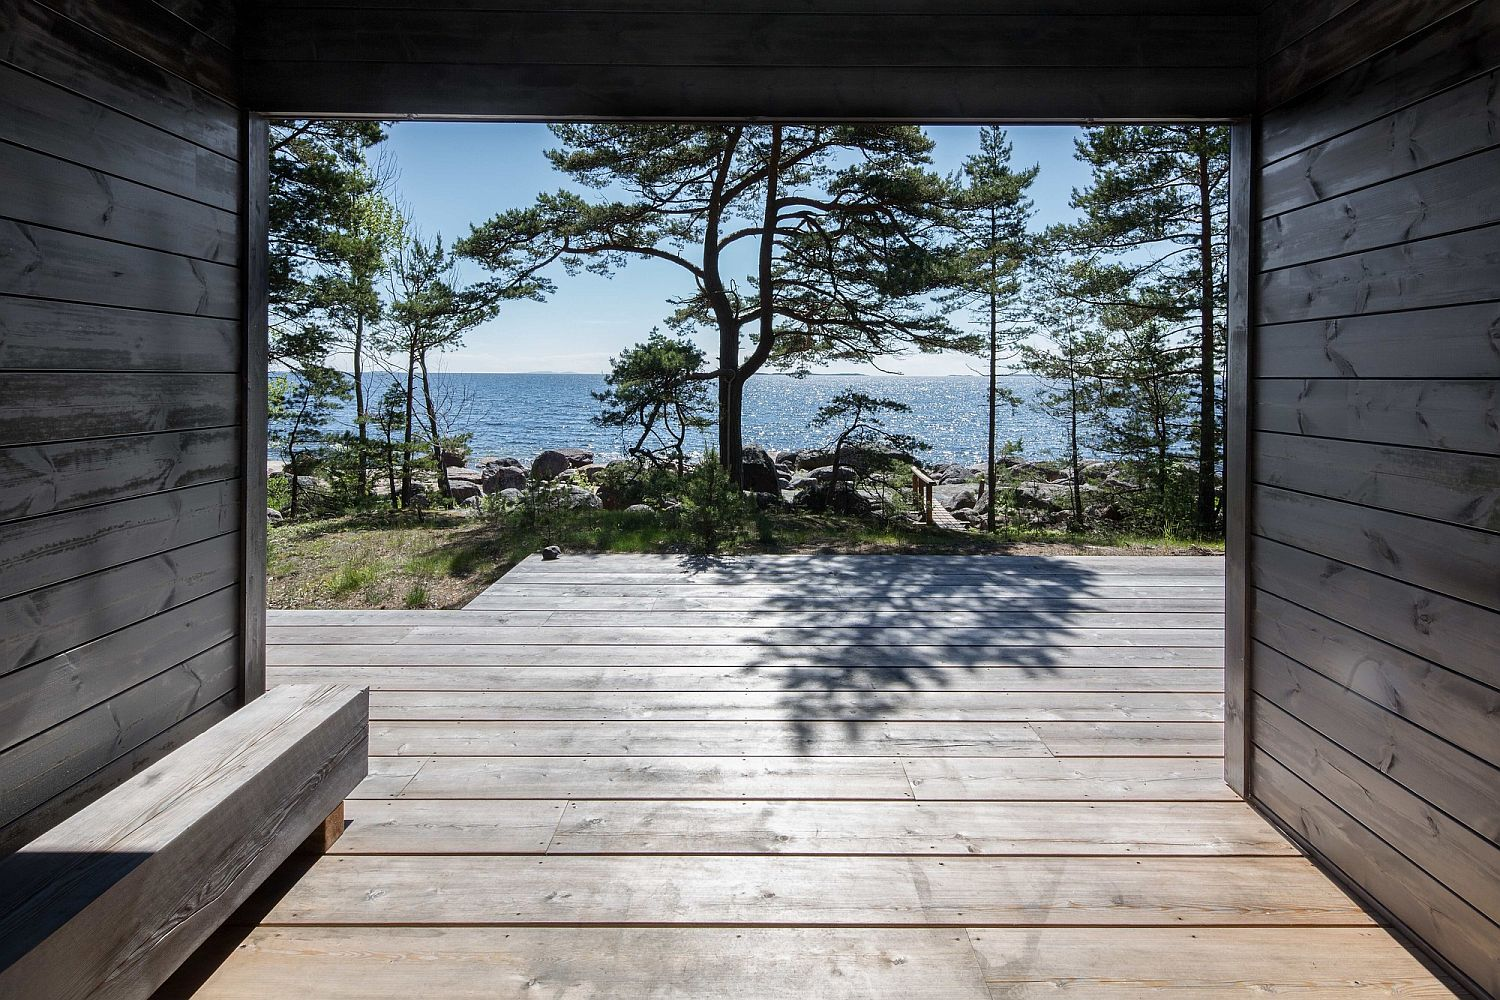 Modern-Pluspuu-logs-without-traditional-log-corners-give-the-exterior-a-refined-look